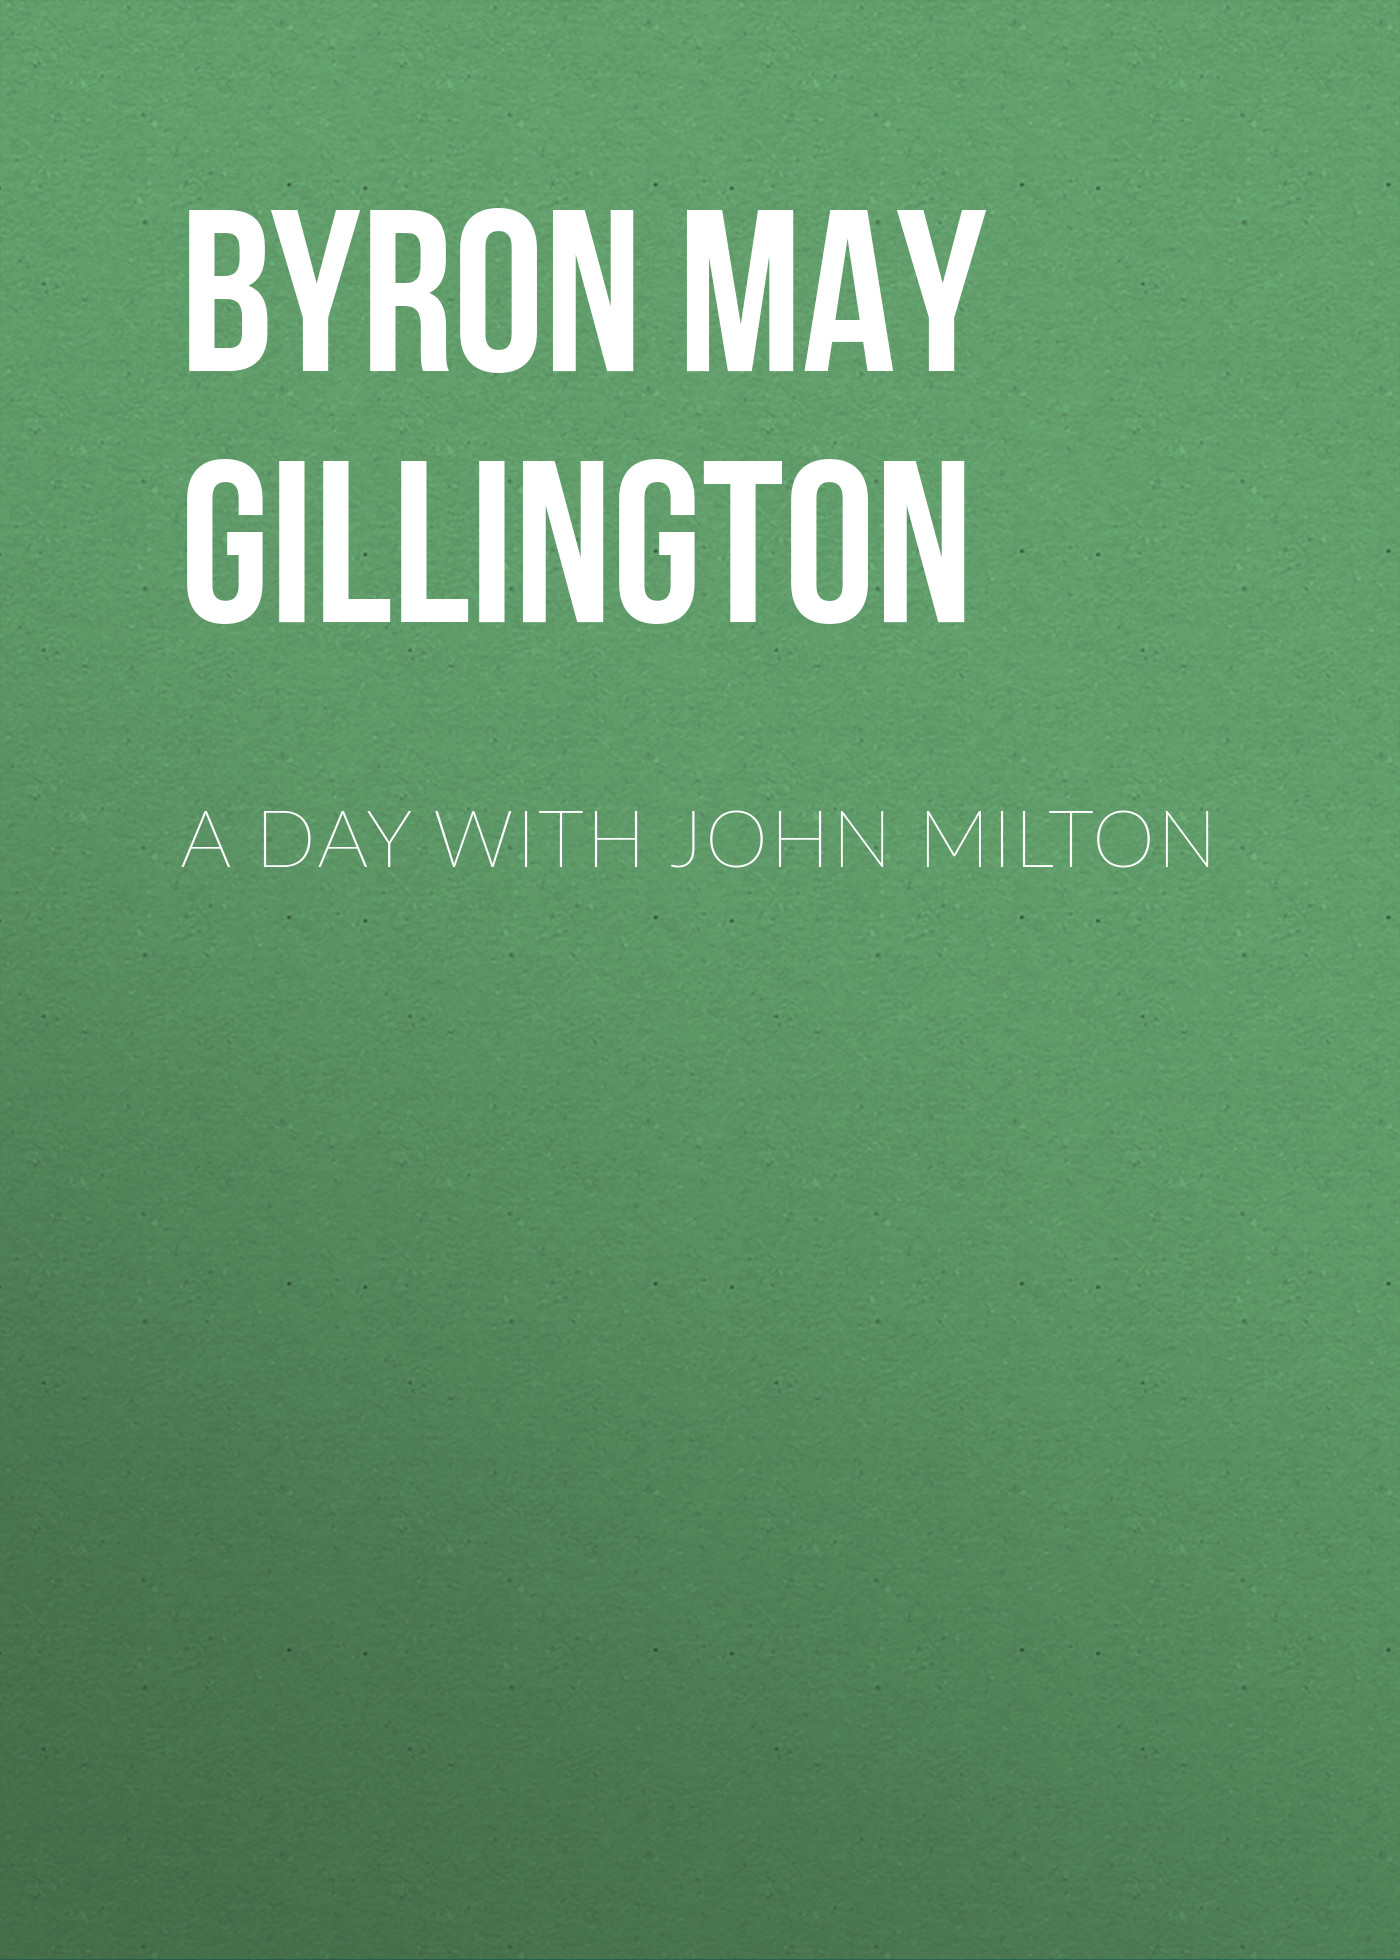 лучшая цена Byron May Clarissa Gillington A Day with John Milton